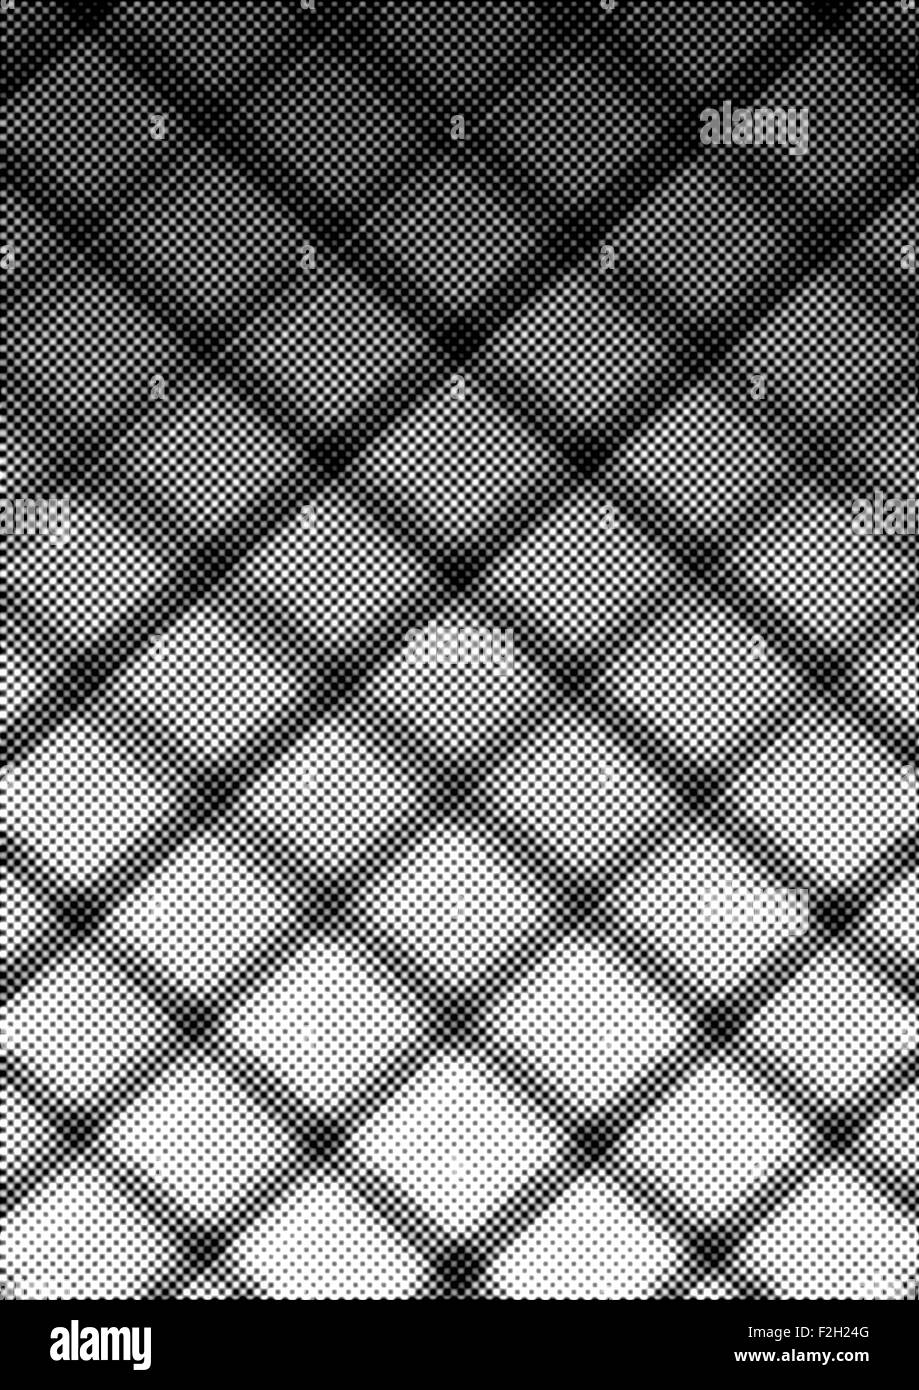 Abstract halftone rhombuses shape background with black and white shades - Stock Image